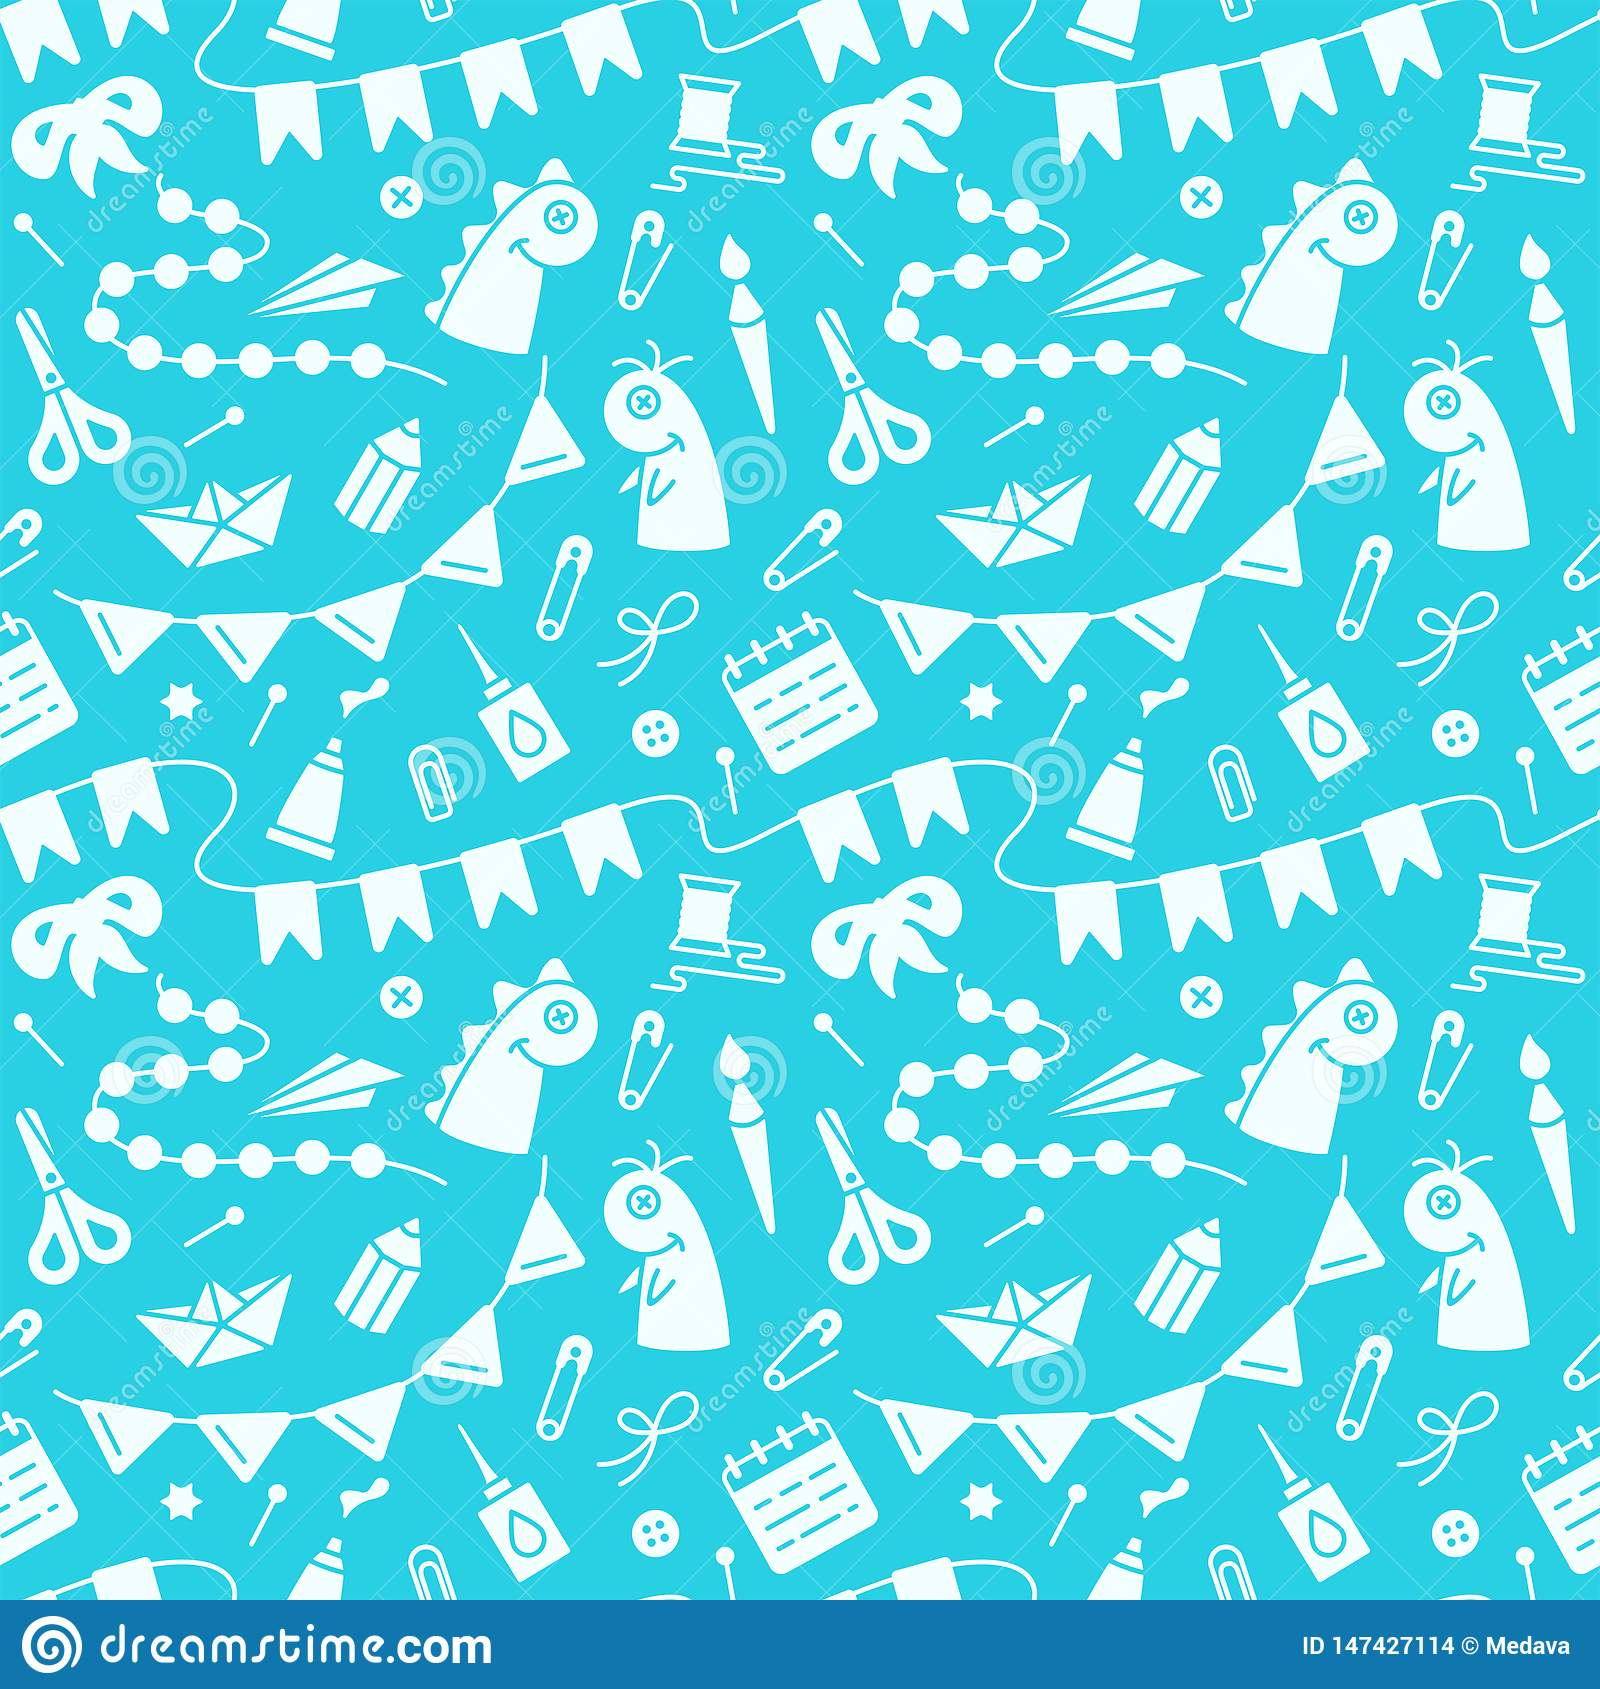 Repetitive seamless pattern with objects for kids creative activity